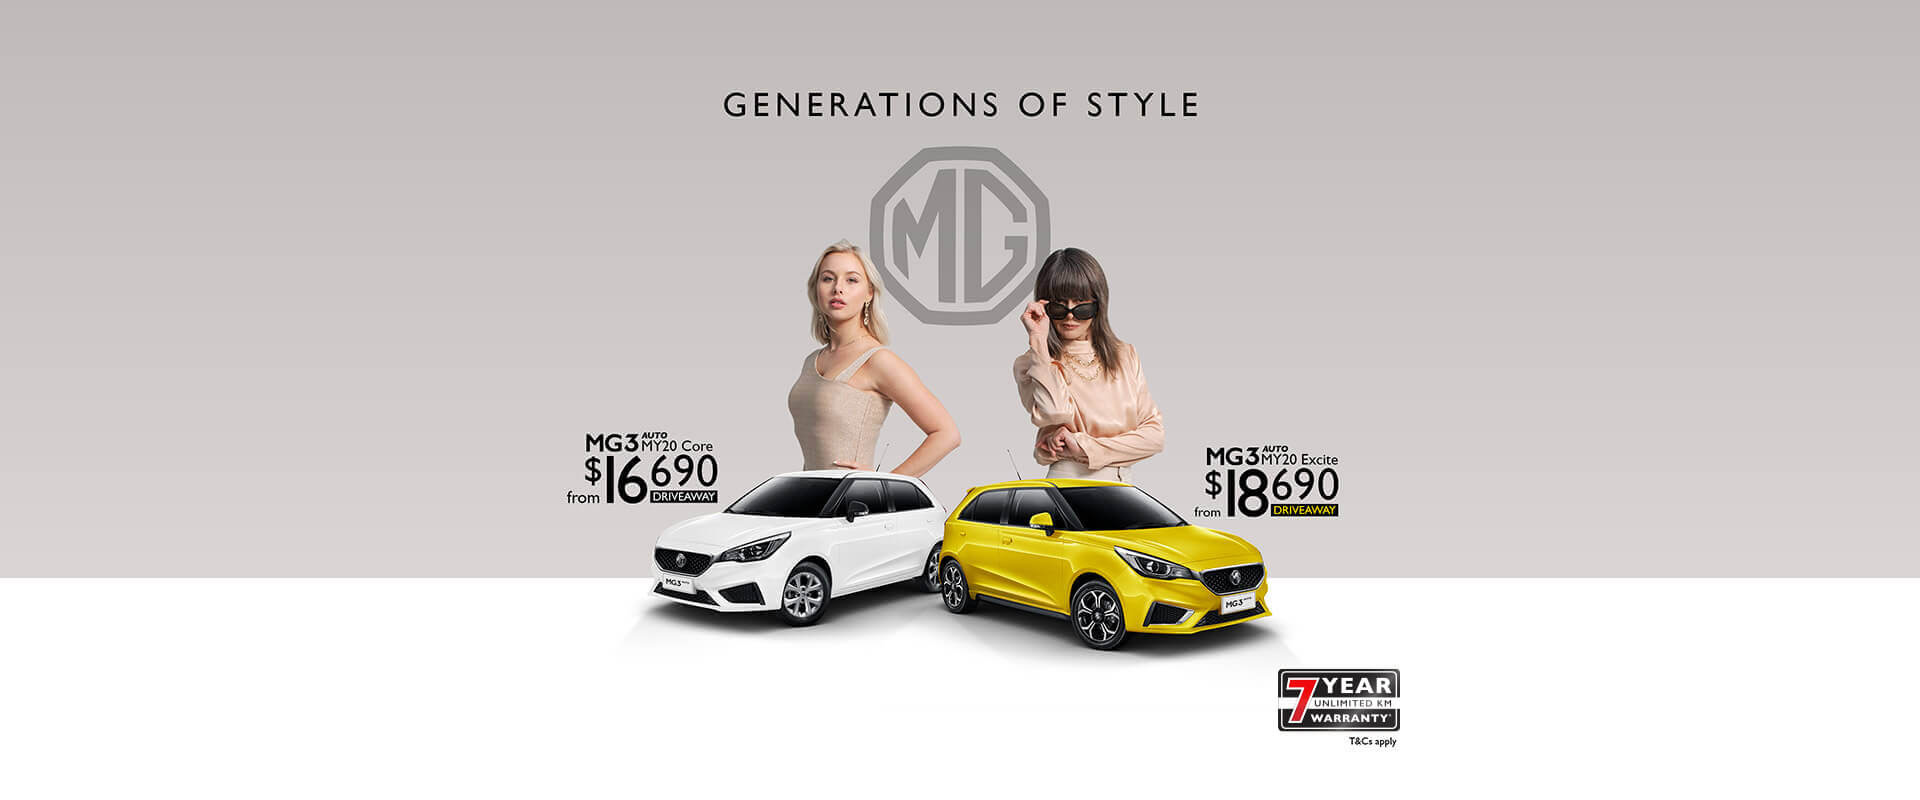 MG - Generations of Style